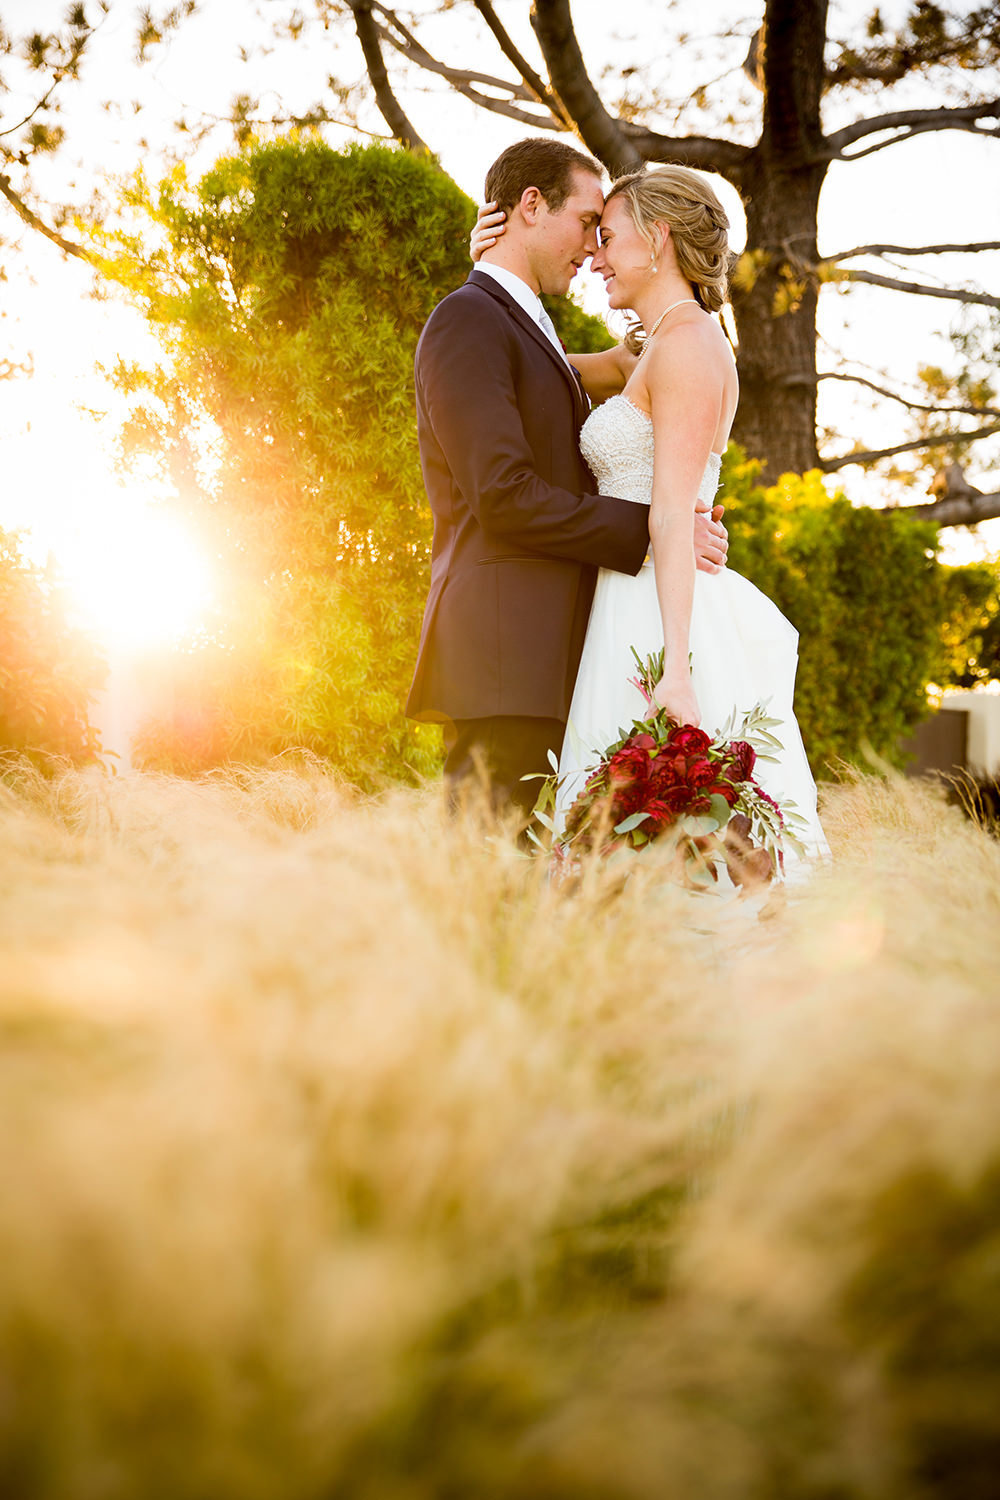 bride and groom in open field with grass